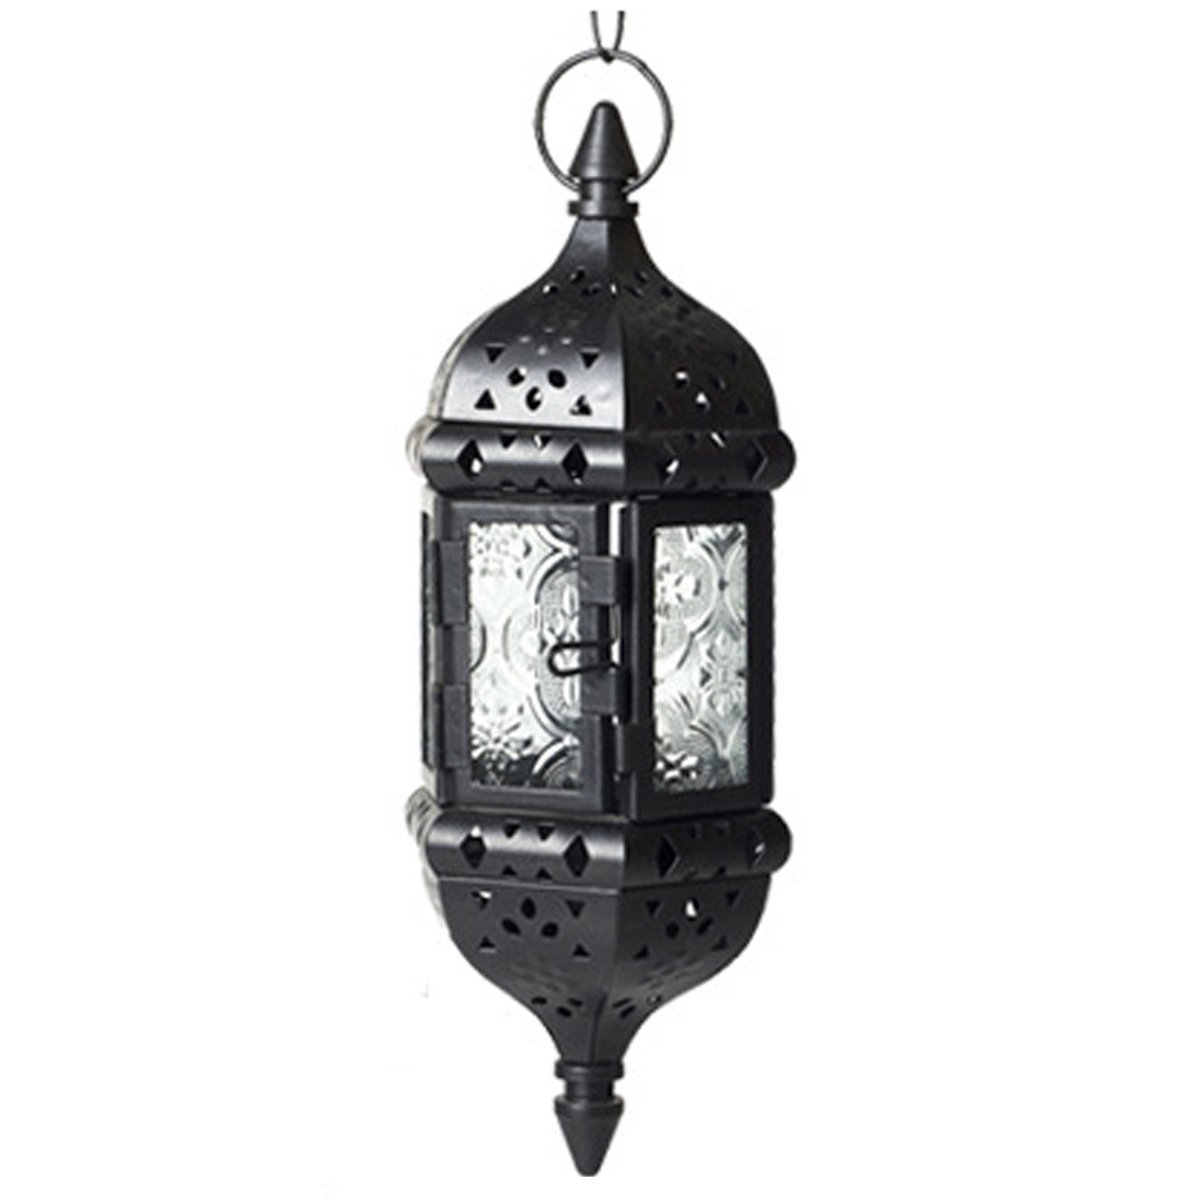 Glass Metal Moroccan Candle Holder Vintage Hanging Lantern With 17.3'' Hanging Chain (Black)